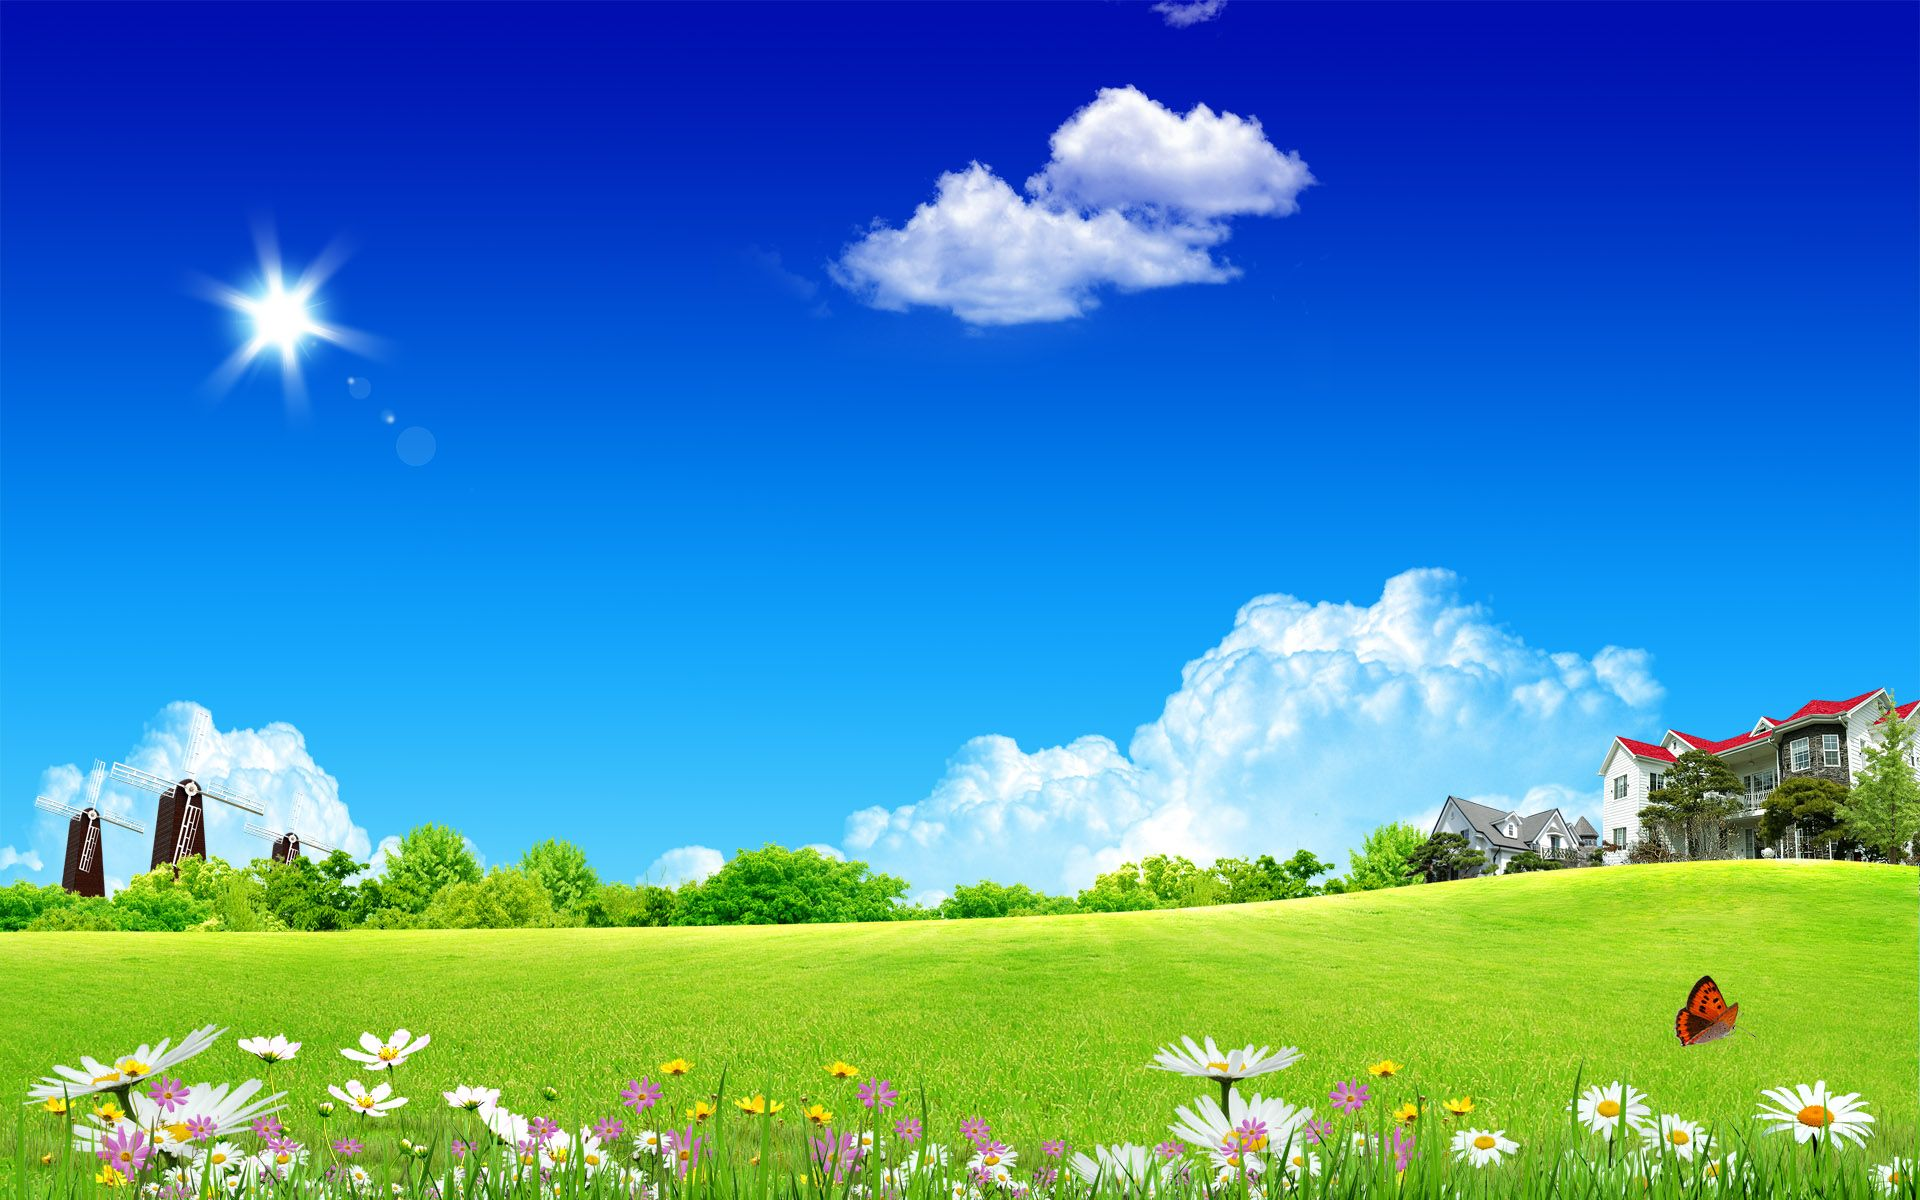 Sunny Landscape Houses Landscape Nature Other Sky Spring Sunny Trees Windmills Nature Wallpaper Natural Scenery Scenery